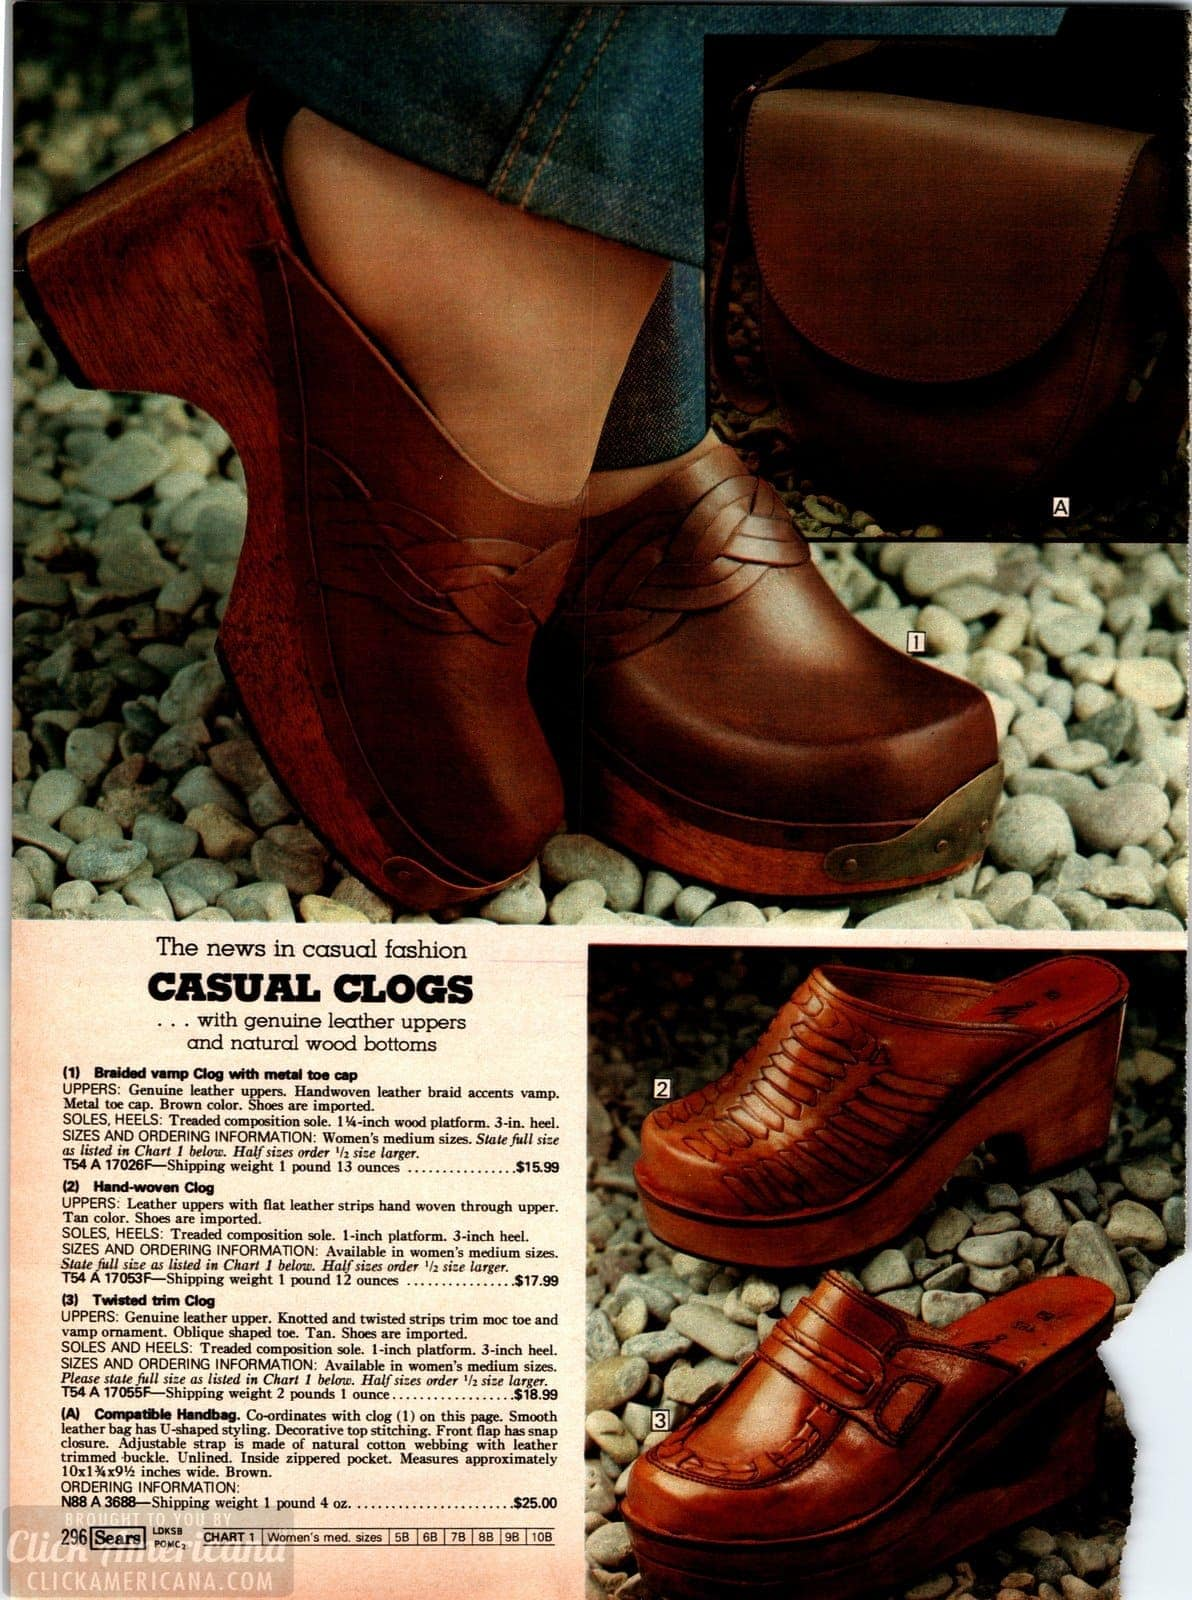 Vintage 70s casual clogs for women with brown leather uppers and natural wood platforms